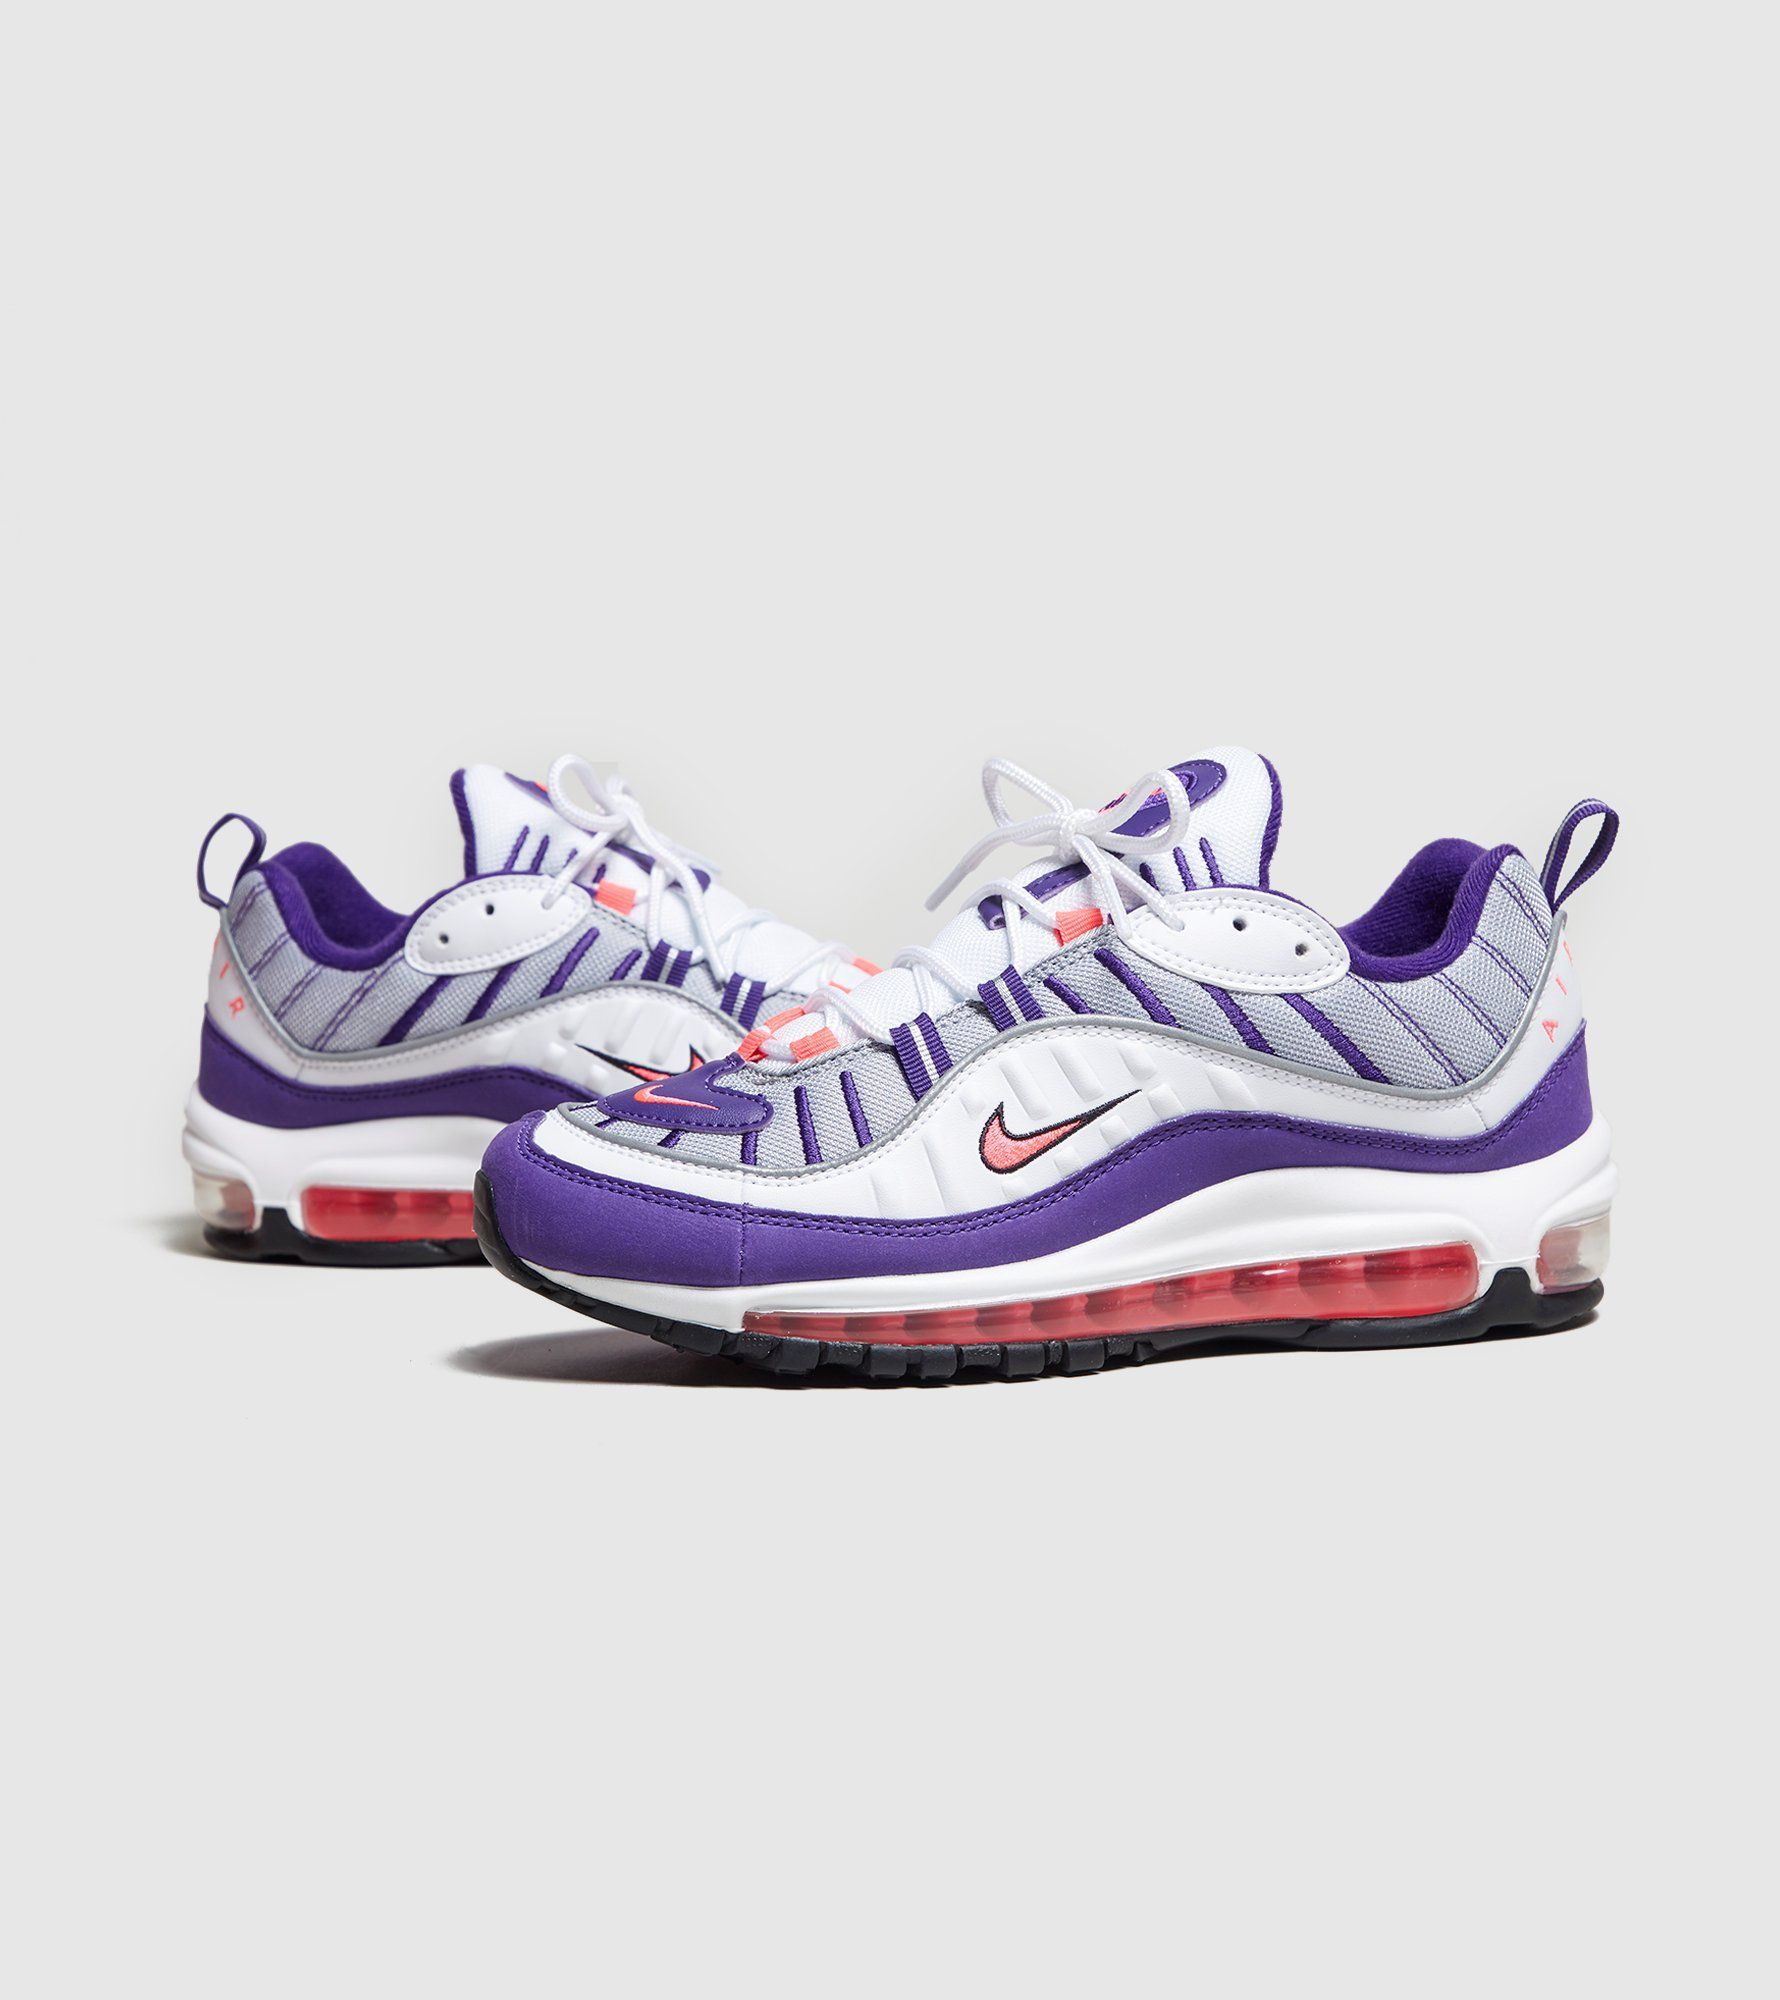 Nike Air Max 98 OG Frauen